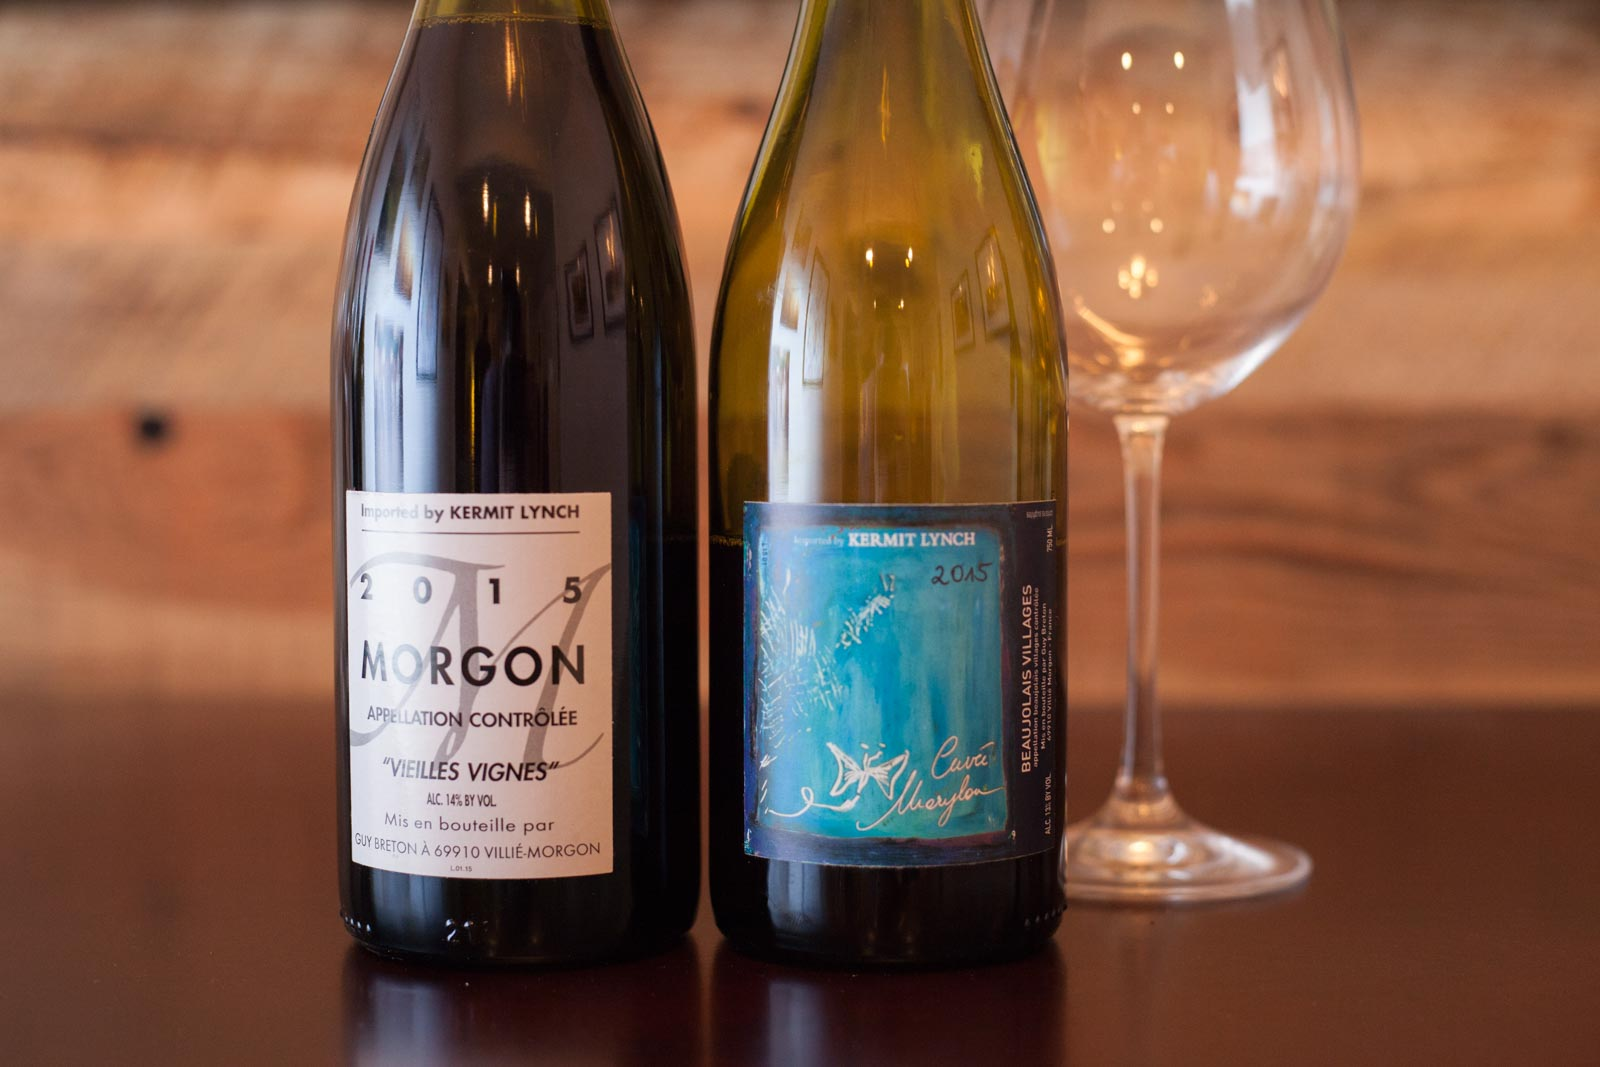 The wines of Guy Breton – Beaujolais-Villages, Morgon, Thanksgiving wines